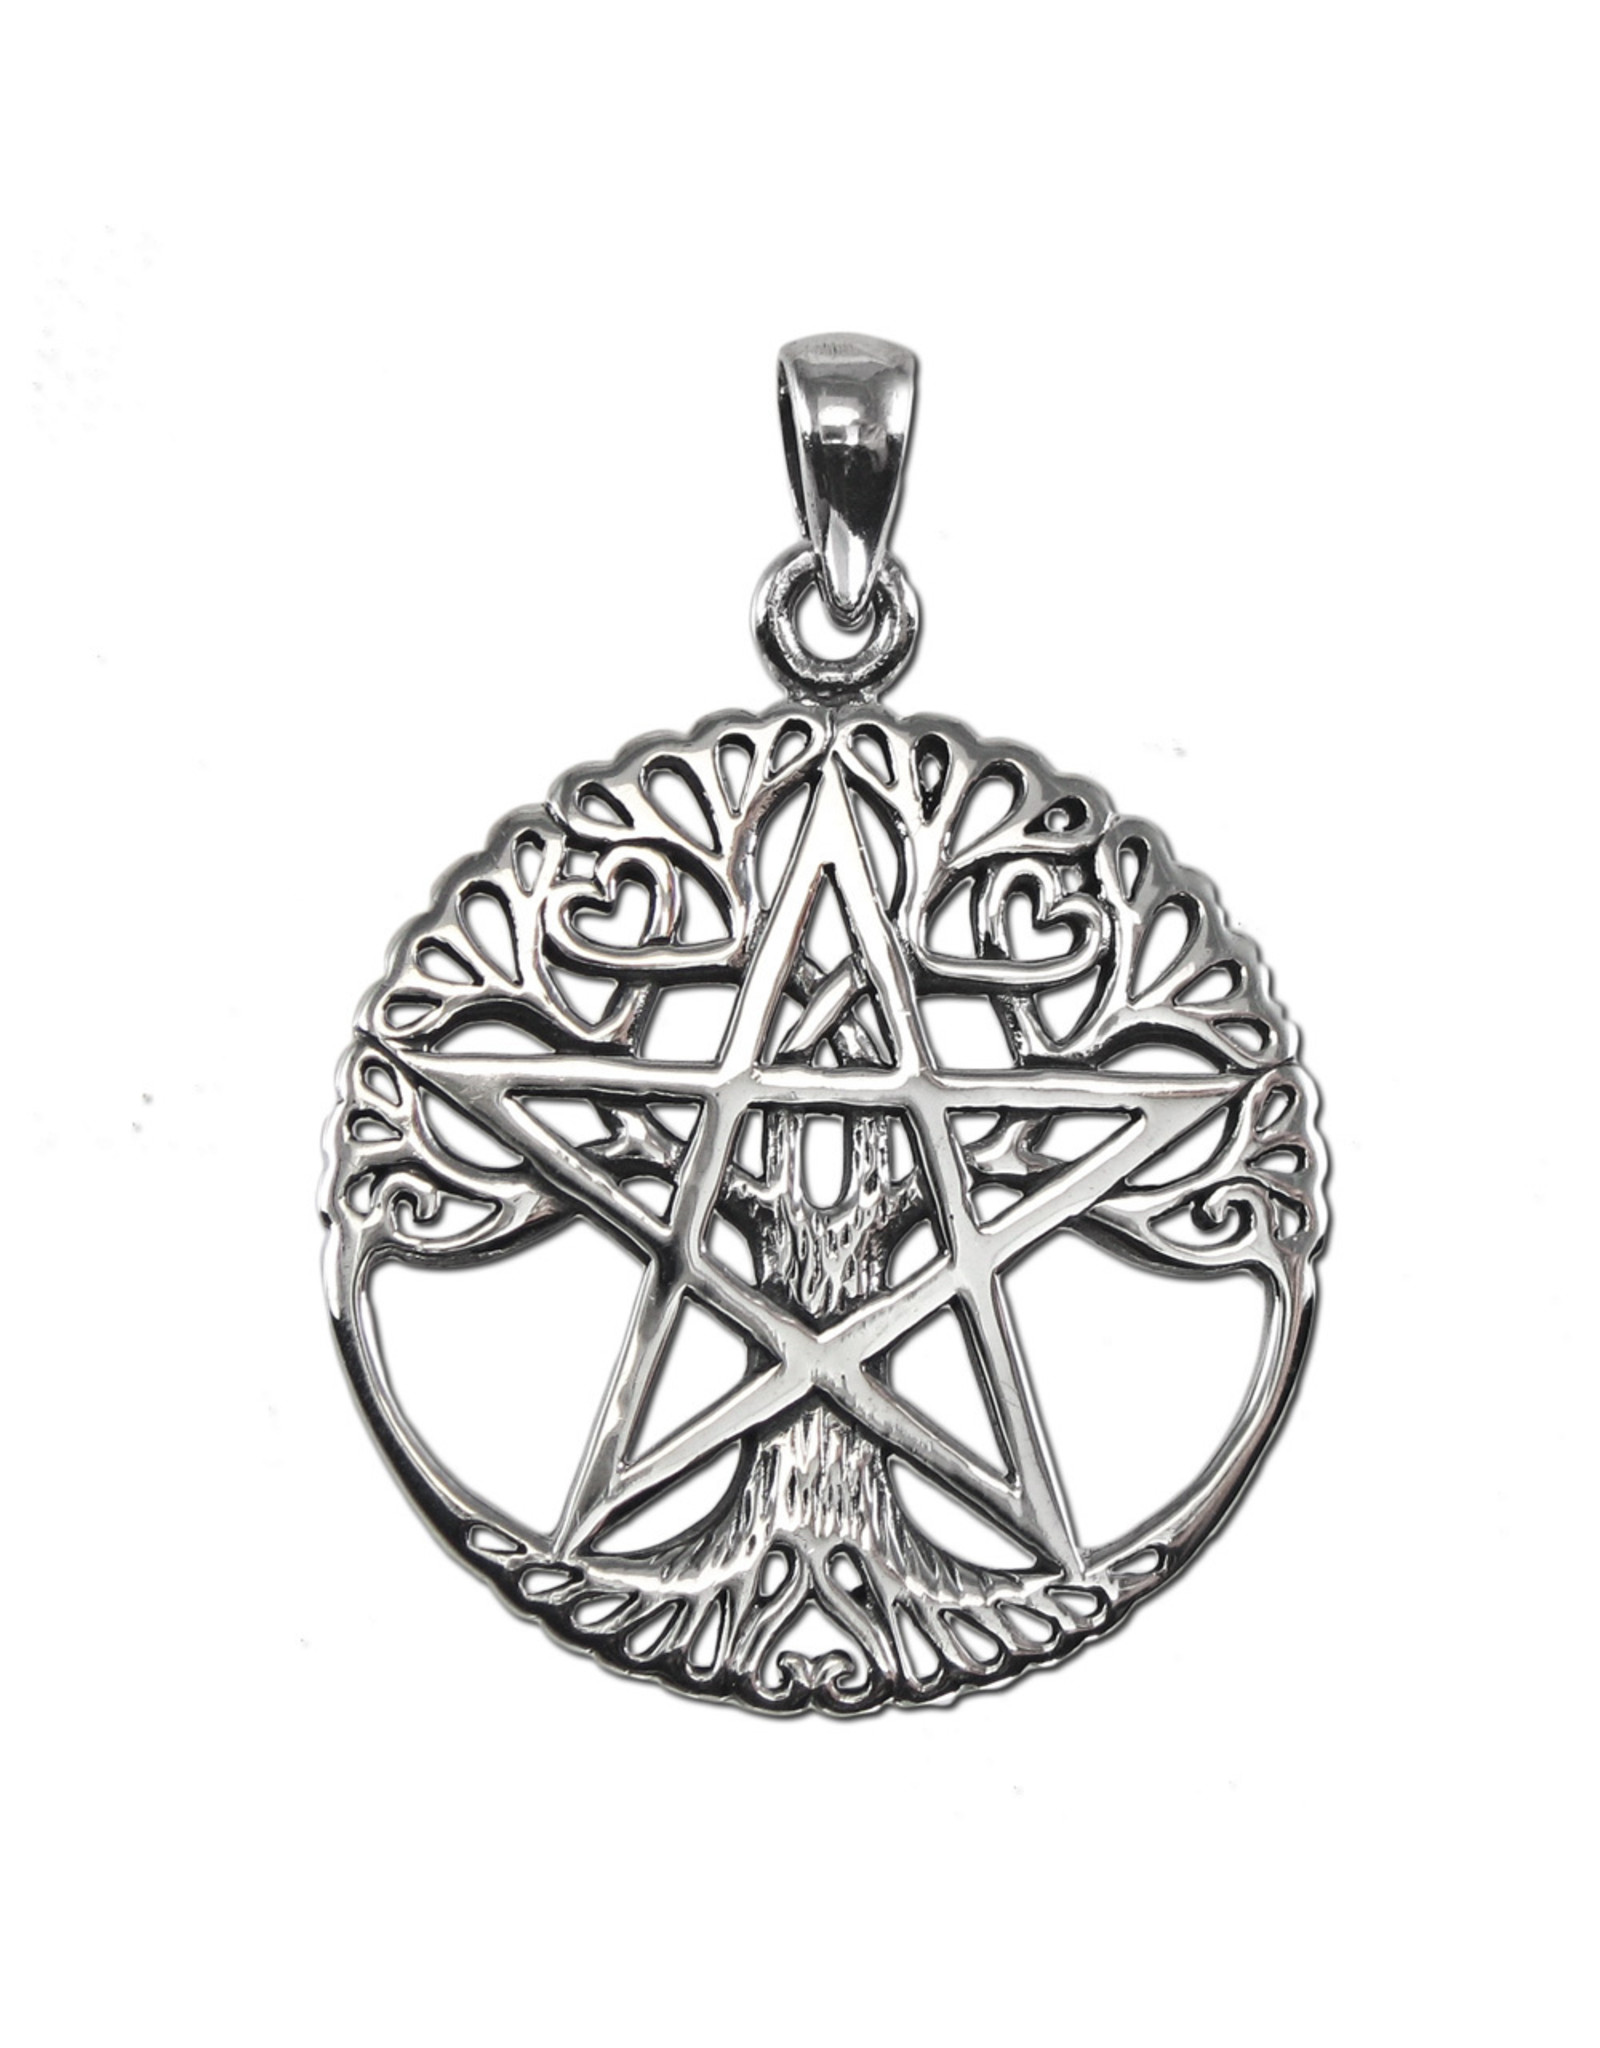 Cut Out Tree Pentacle Pendant in Sterling Silver